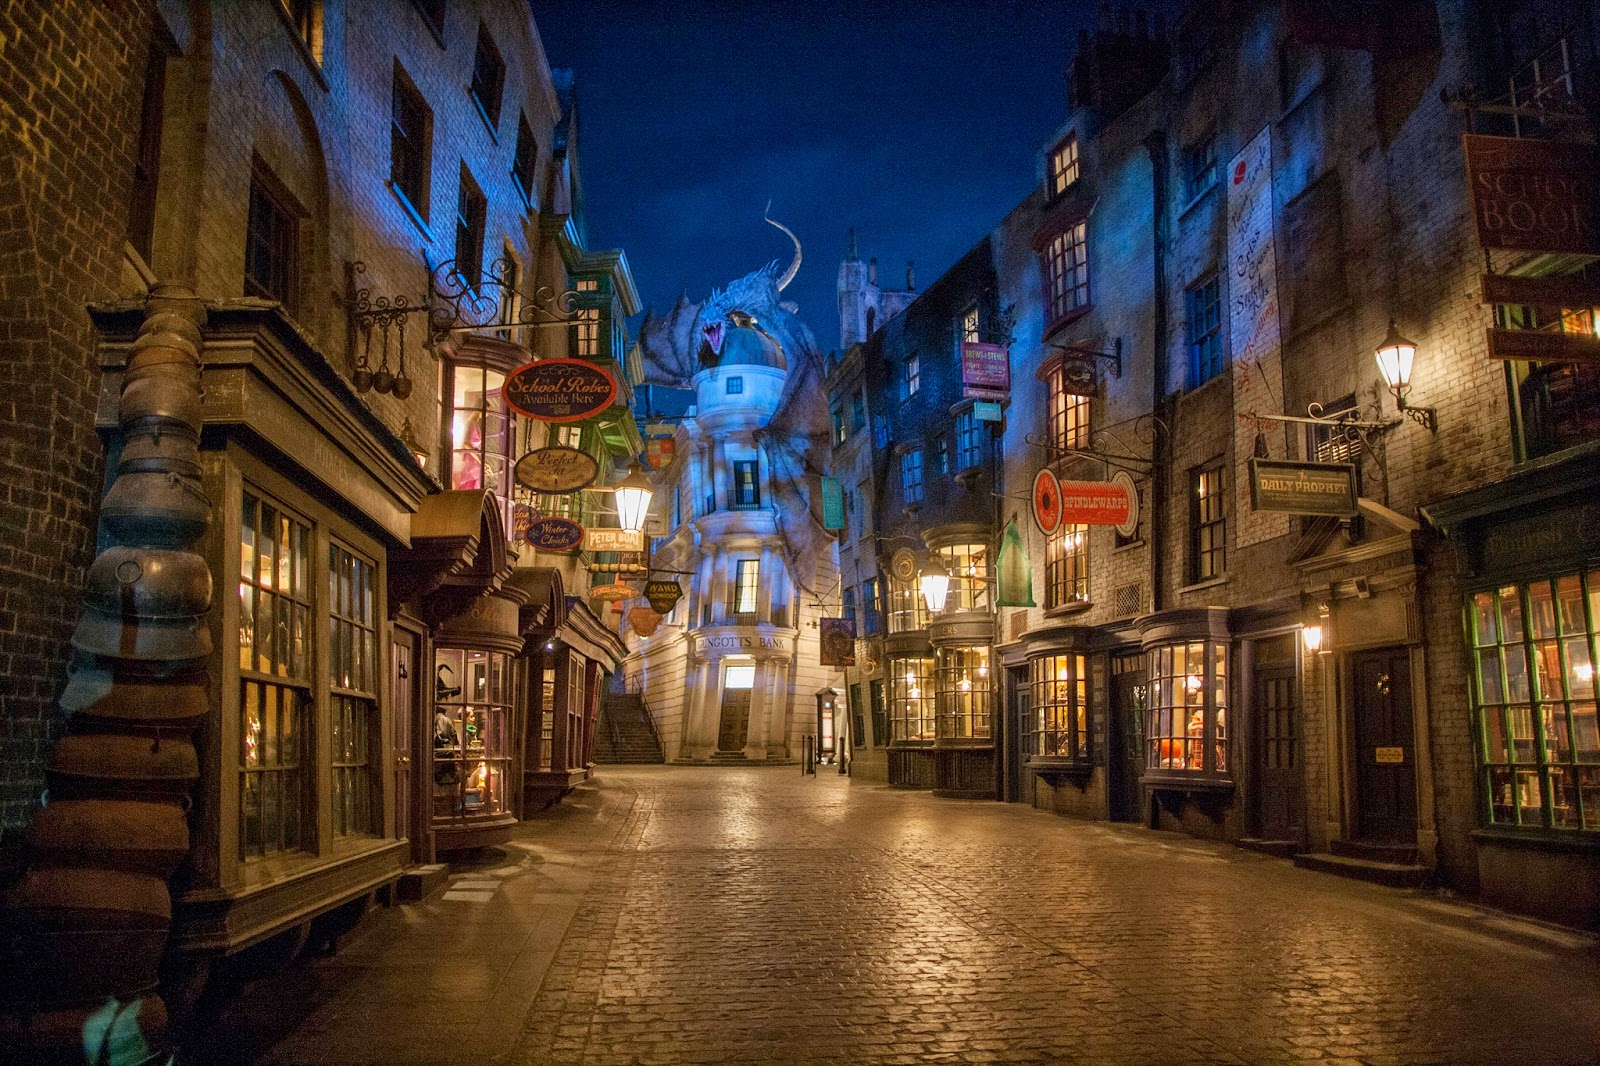 Diagon Alley at night with The Daily Prophet